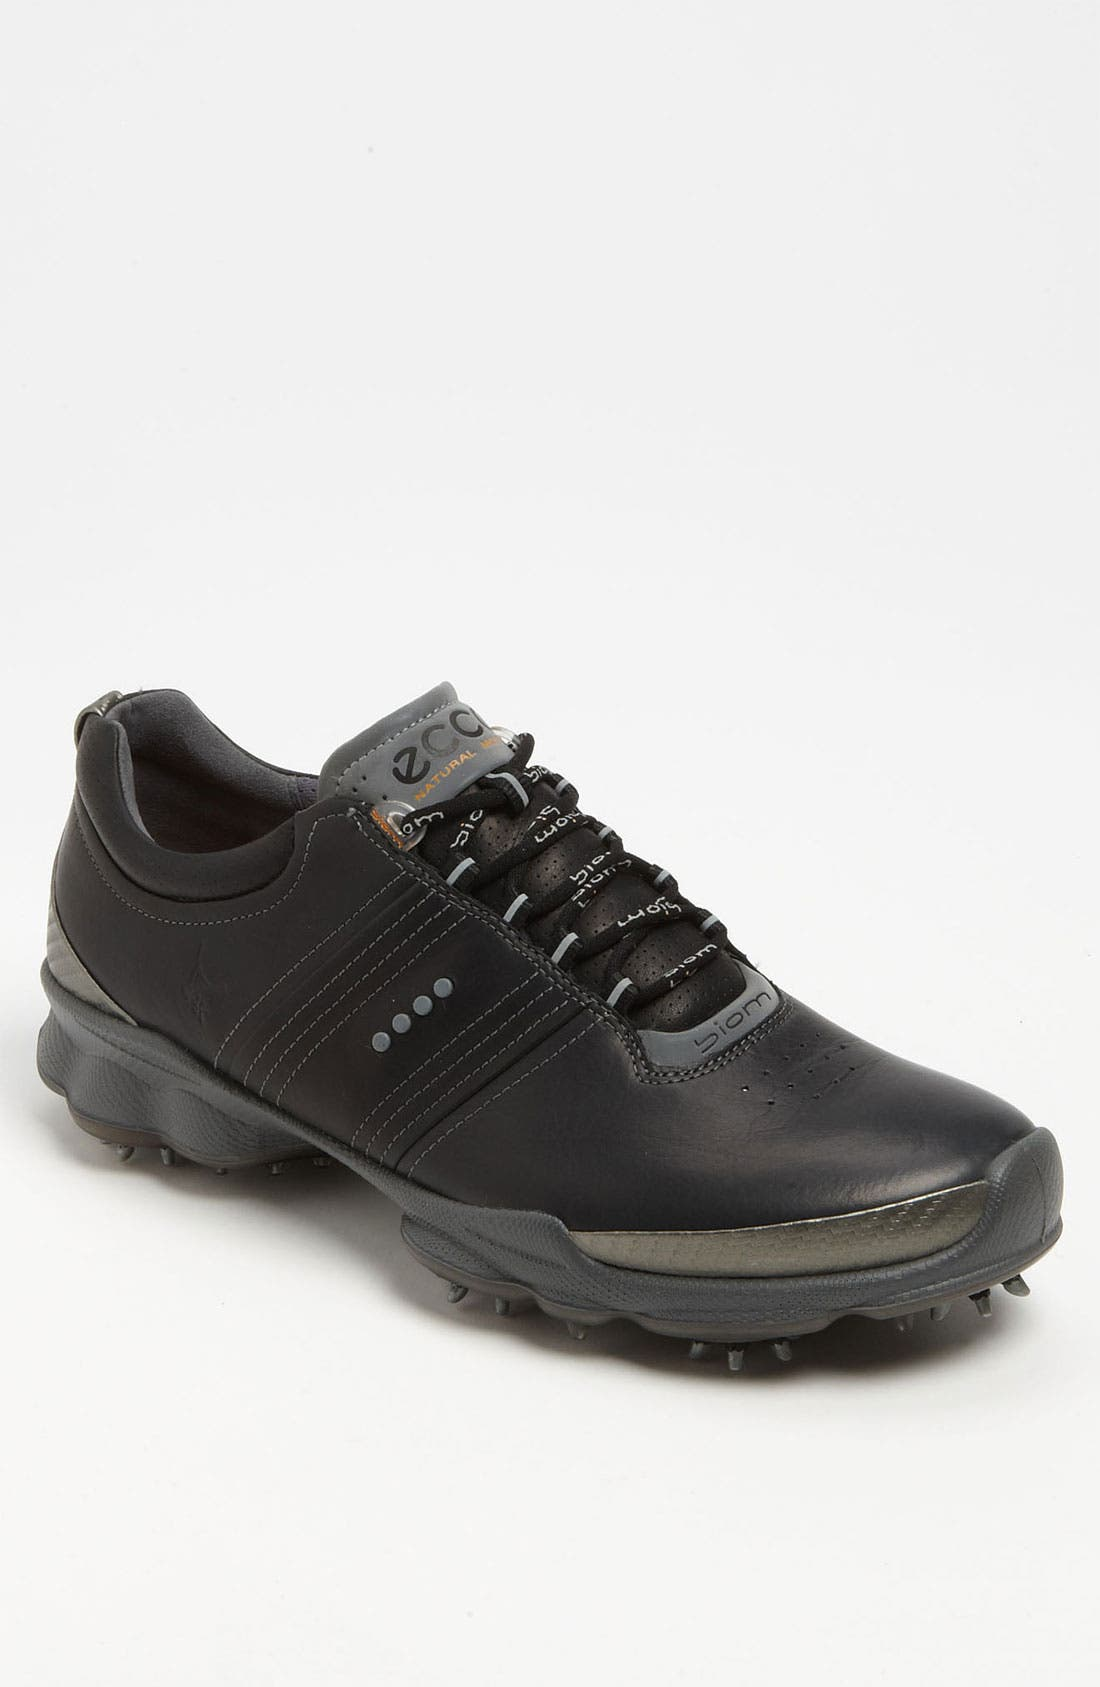 Main Image - ECCO 'Biom' Hydromax Golf Shoe (Men)